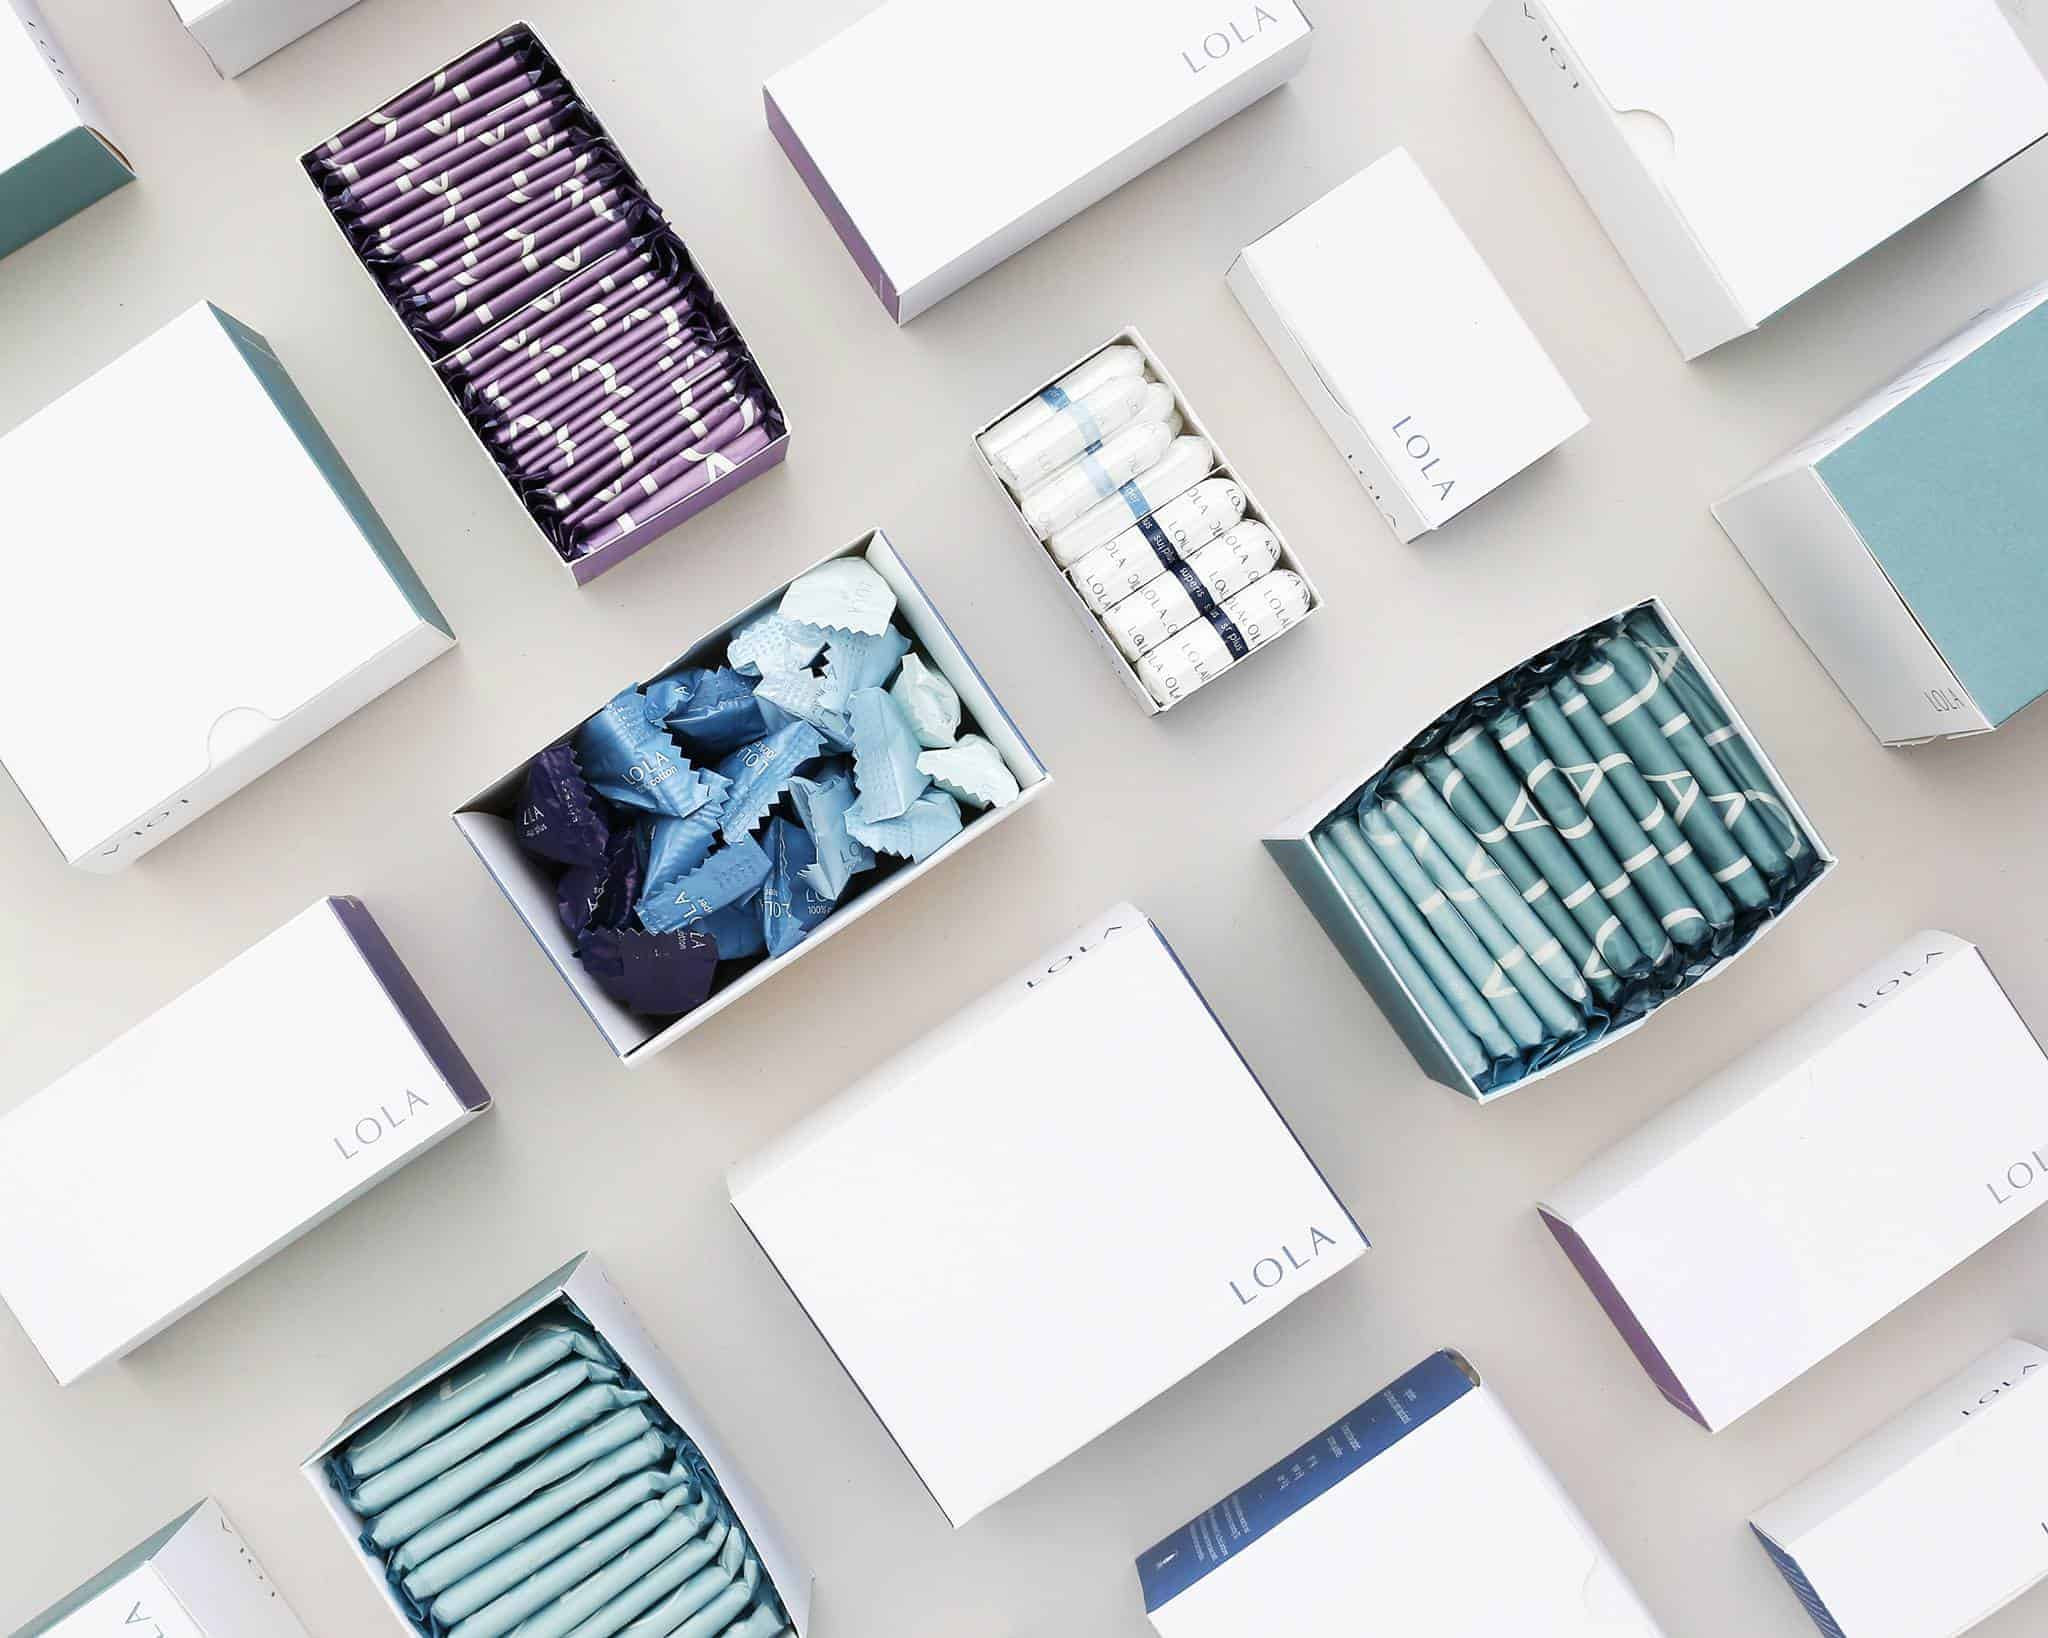 18 Best Period Boxes Tampon Amp Period Subscription Boxes